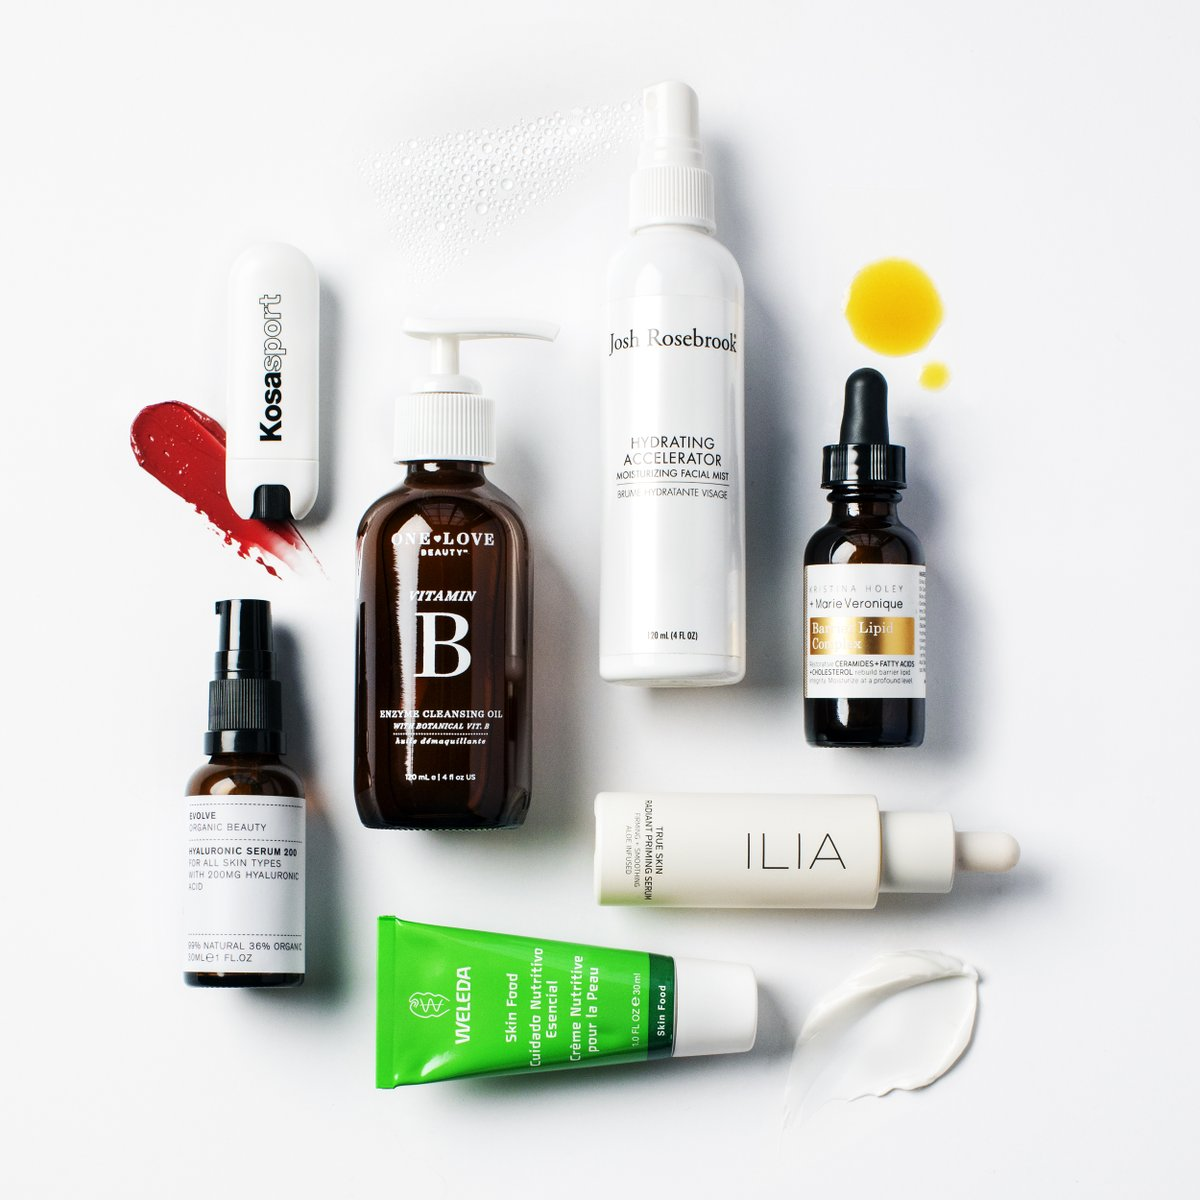 Dry Skin? Just dew this. Try these fixes for dehydrated winter skin #DryJanuary #cleanbeauty #skincaretips  https://t.co/m63nU1NdWX https://t.co/Nj3tumgubU